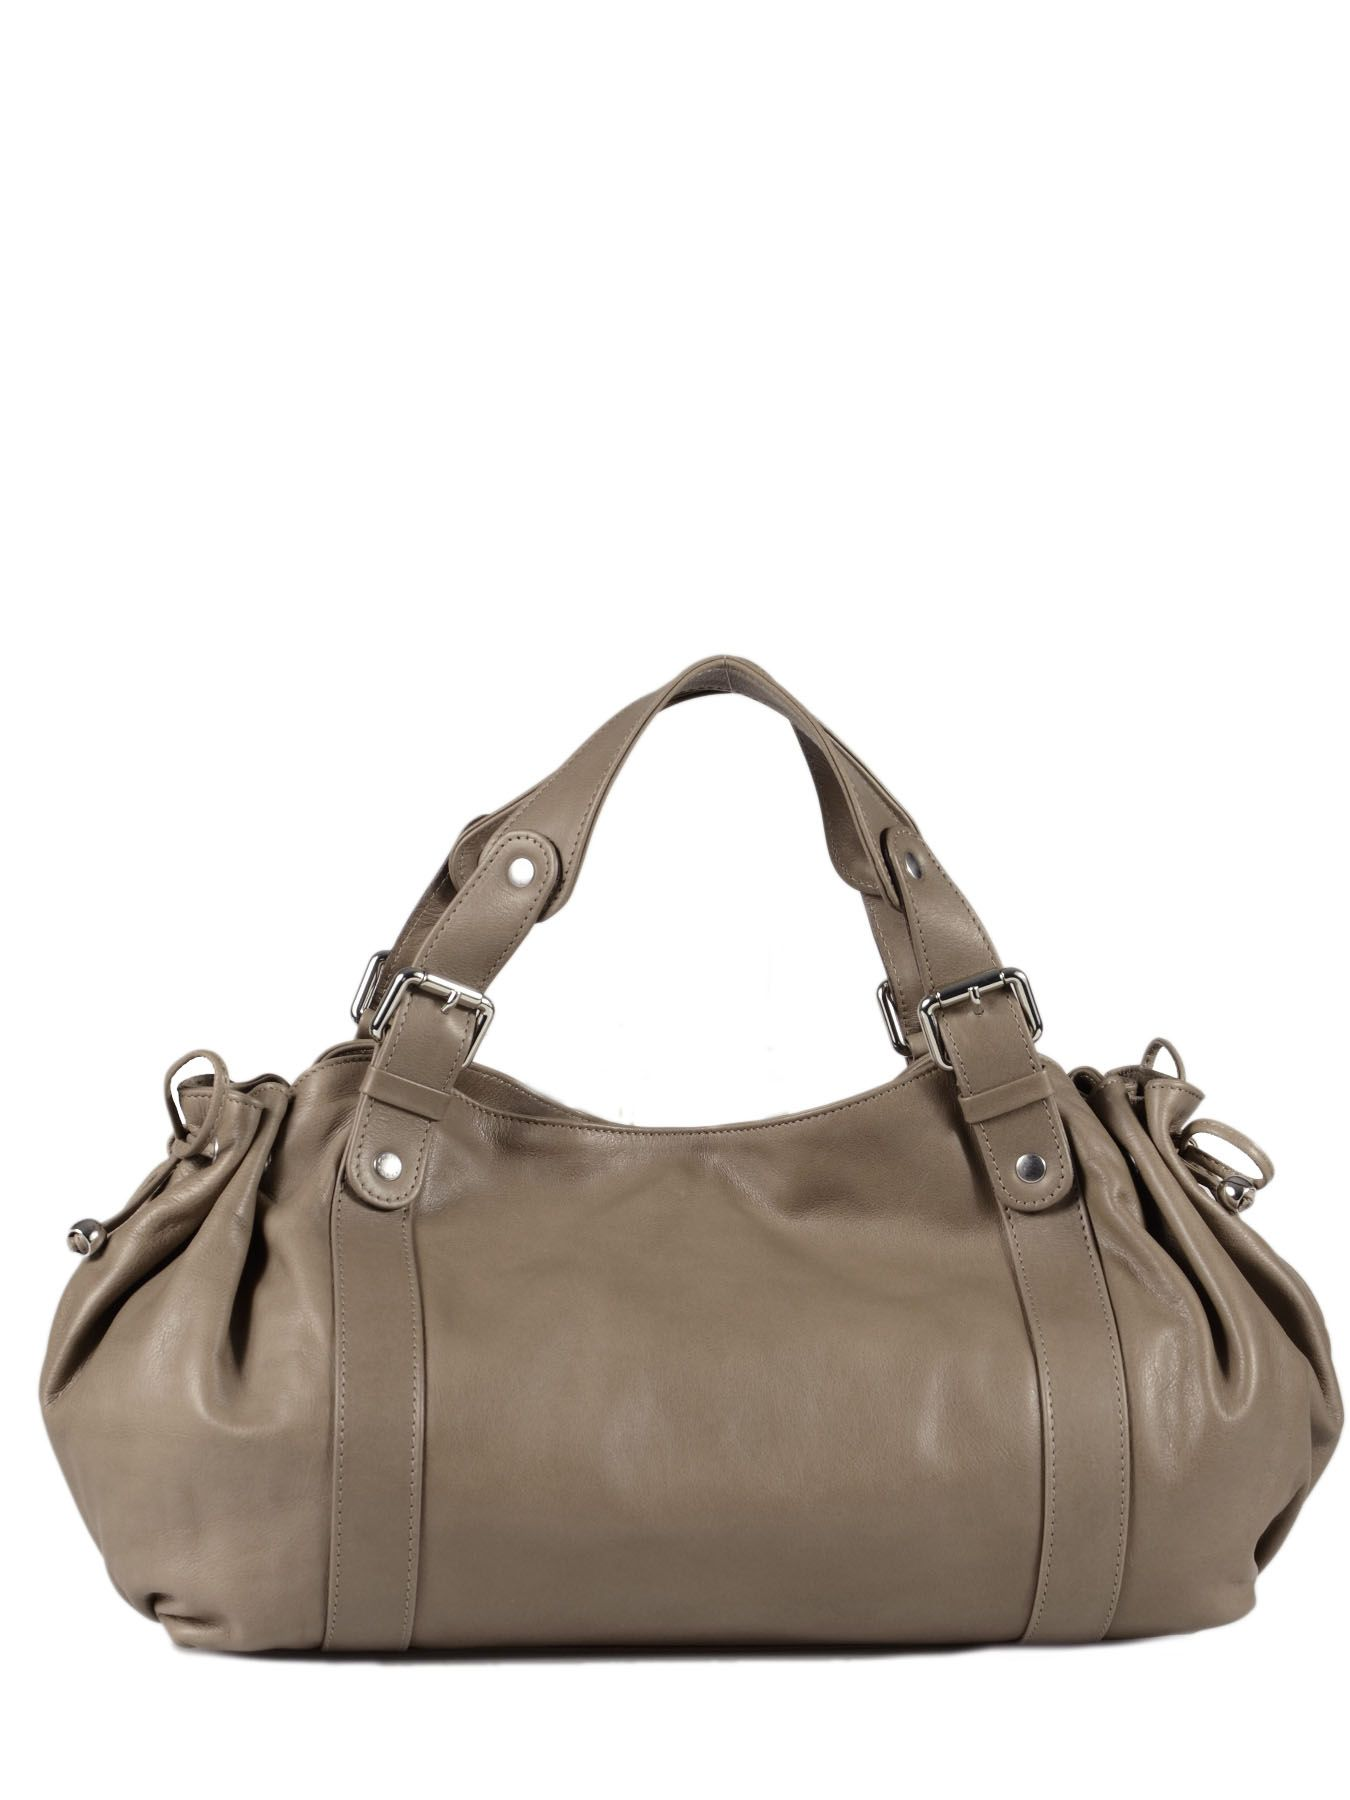 You Hobo Bag in Camel Calfskin Gerard Darel HxQ2K